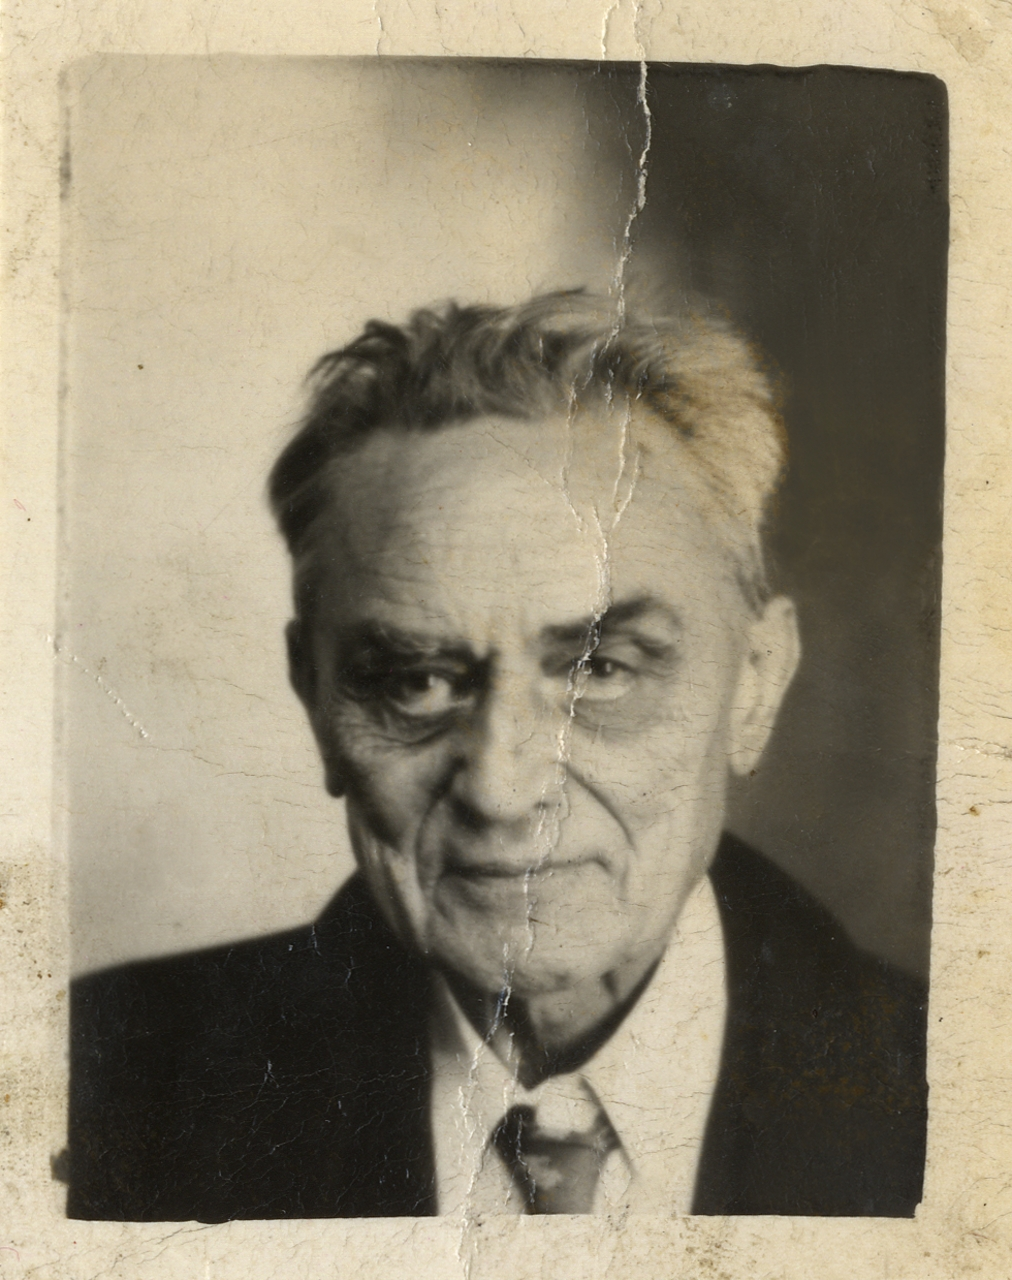 image for Corréard, Jules (1874-1957)